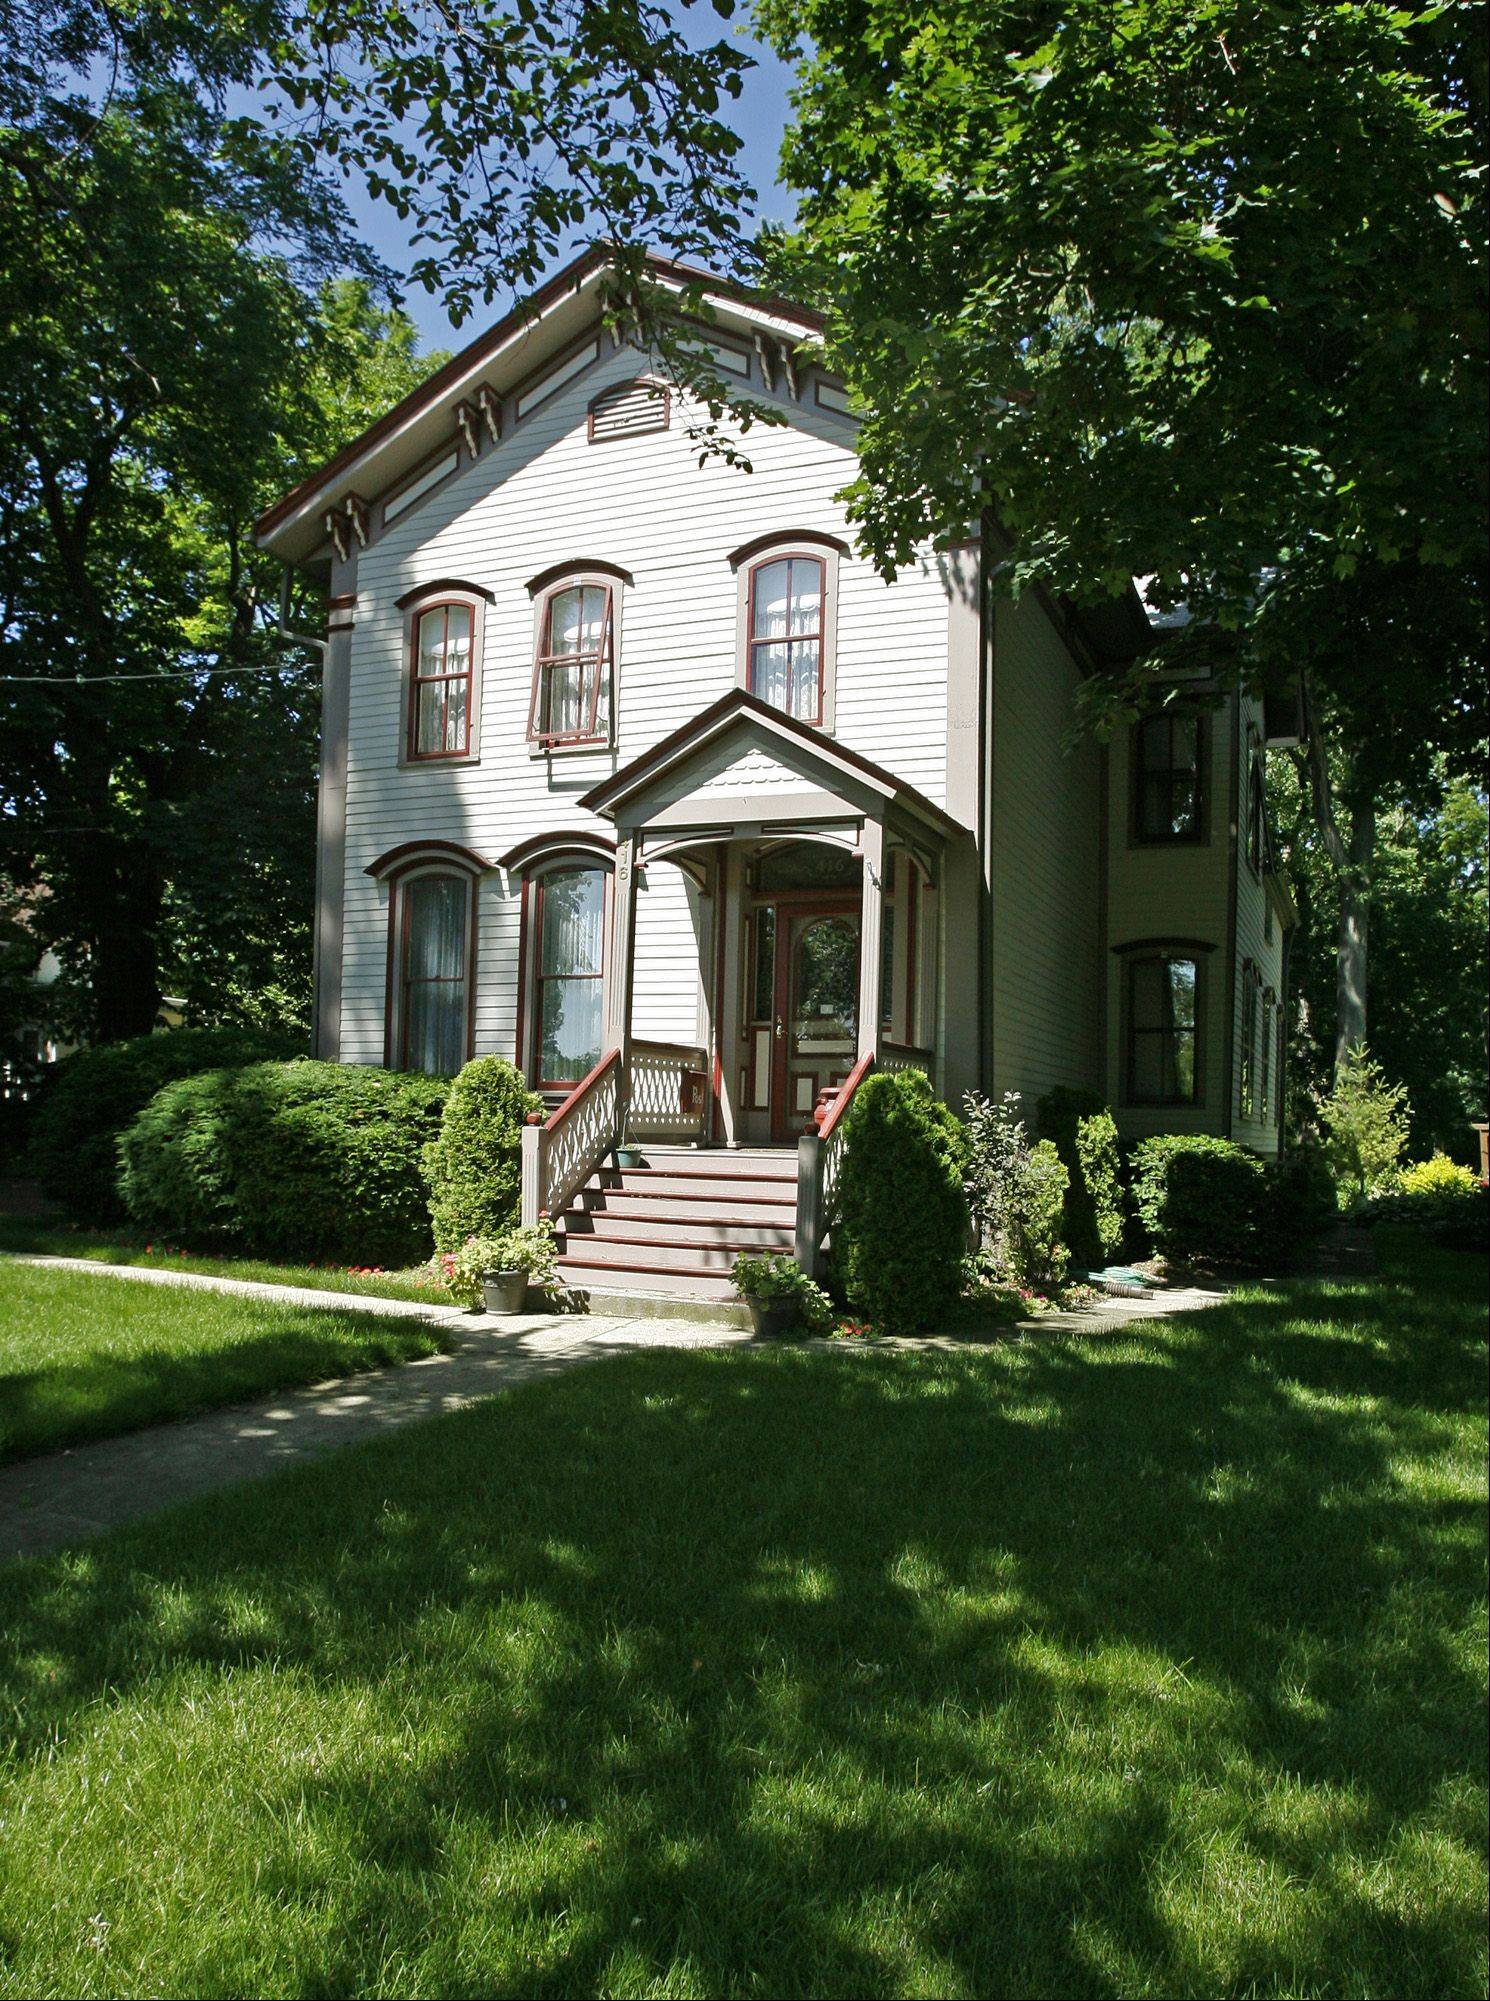 This Queen Anne-style house on North Main Street is among the many older homes in downtown Wheaton.